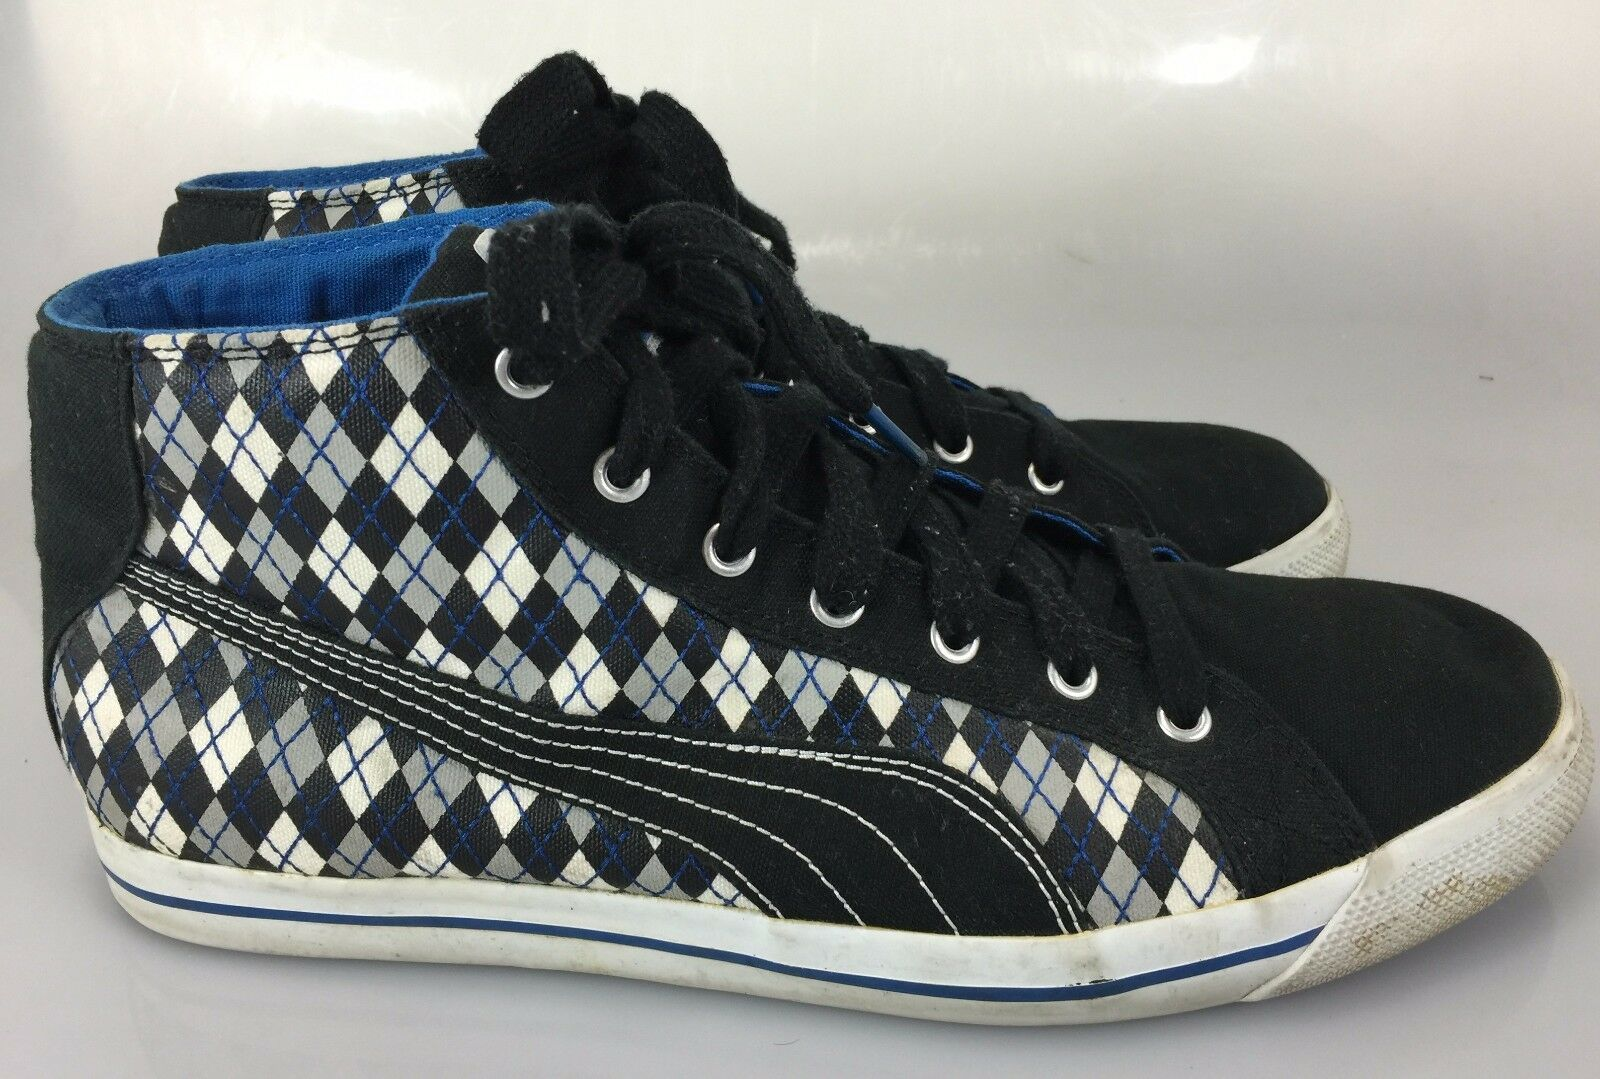 Puma Mens 13 US 12 EU Black White Blue Argyle Sneakers Gym Shoes The most popular shoes for men and women